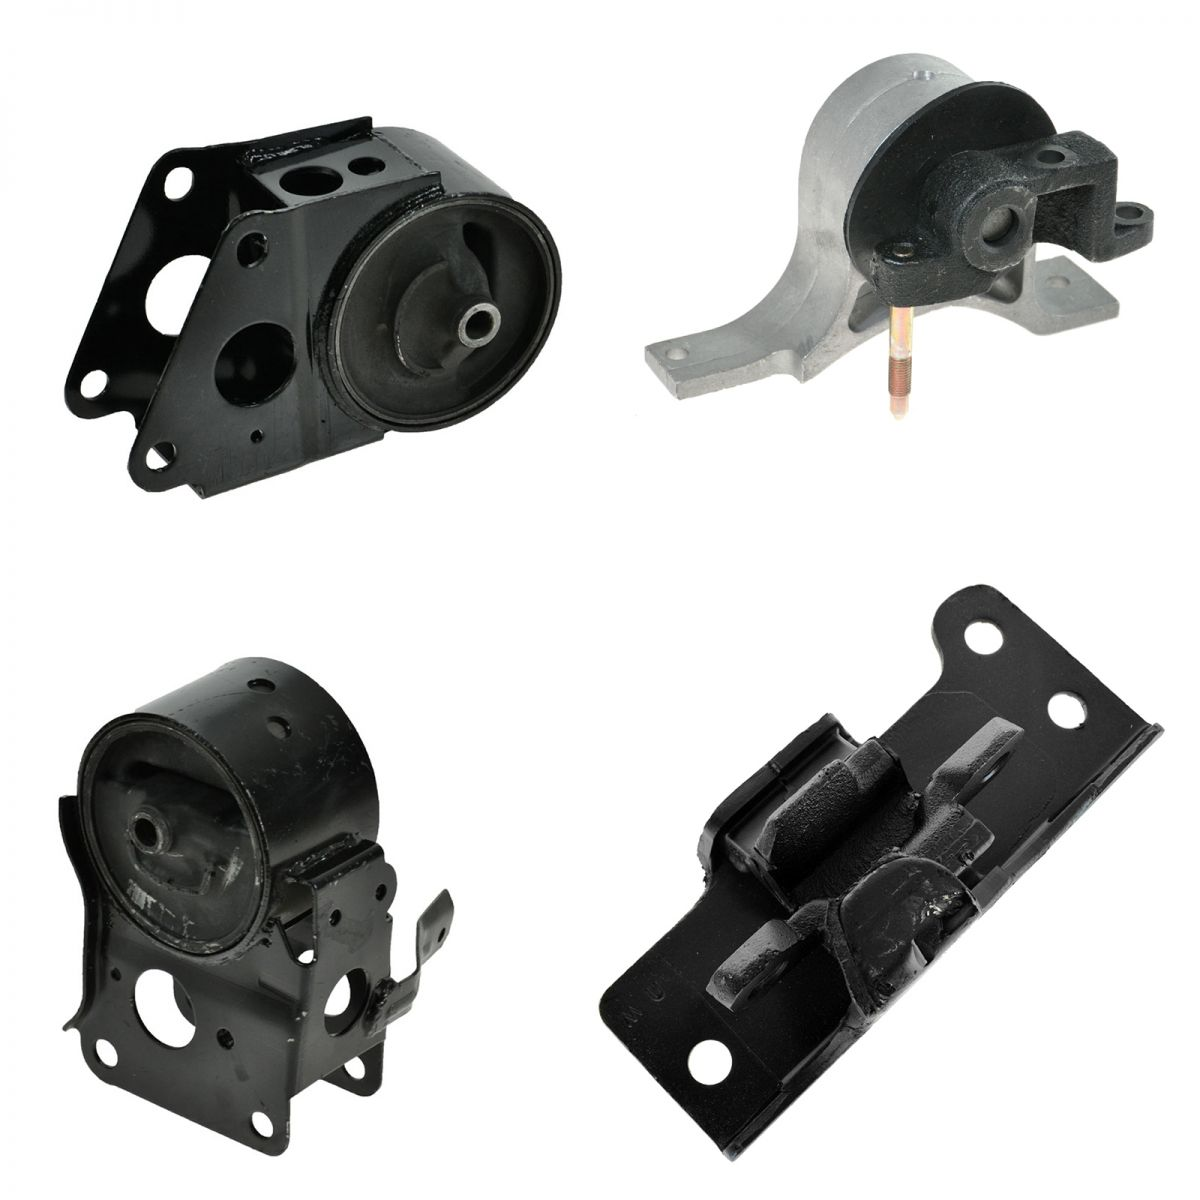 Engine Motor Transmission Mounts Kit Set Of 4 For Nissan Altima Maxima Quest Ebay